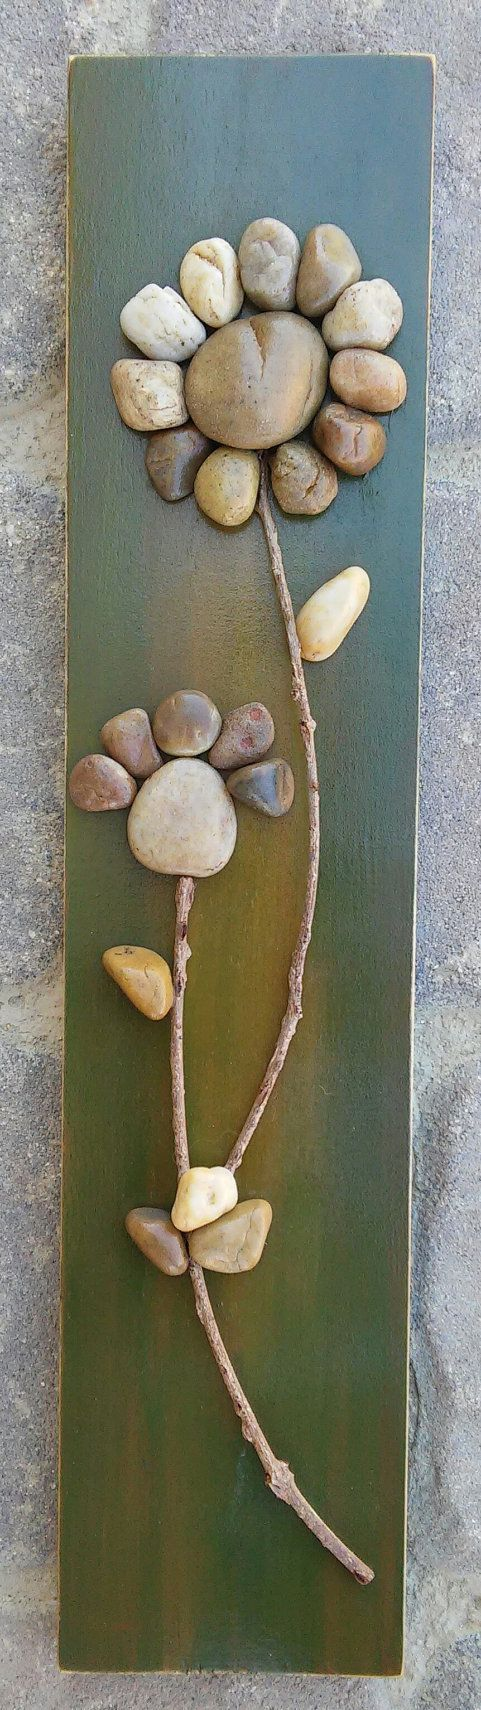 Pebble Art / Rock Art Flower on reclaimed wood, approx. 15.5x3.5 (FREE SHIPPING)